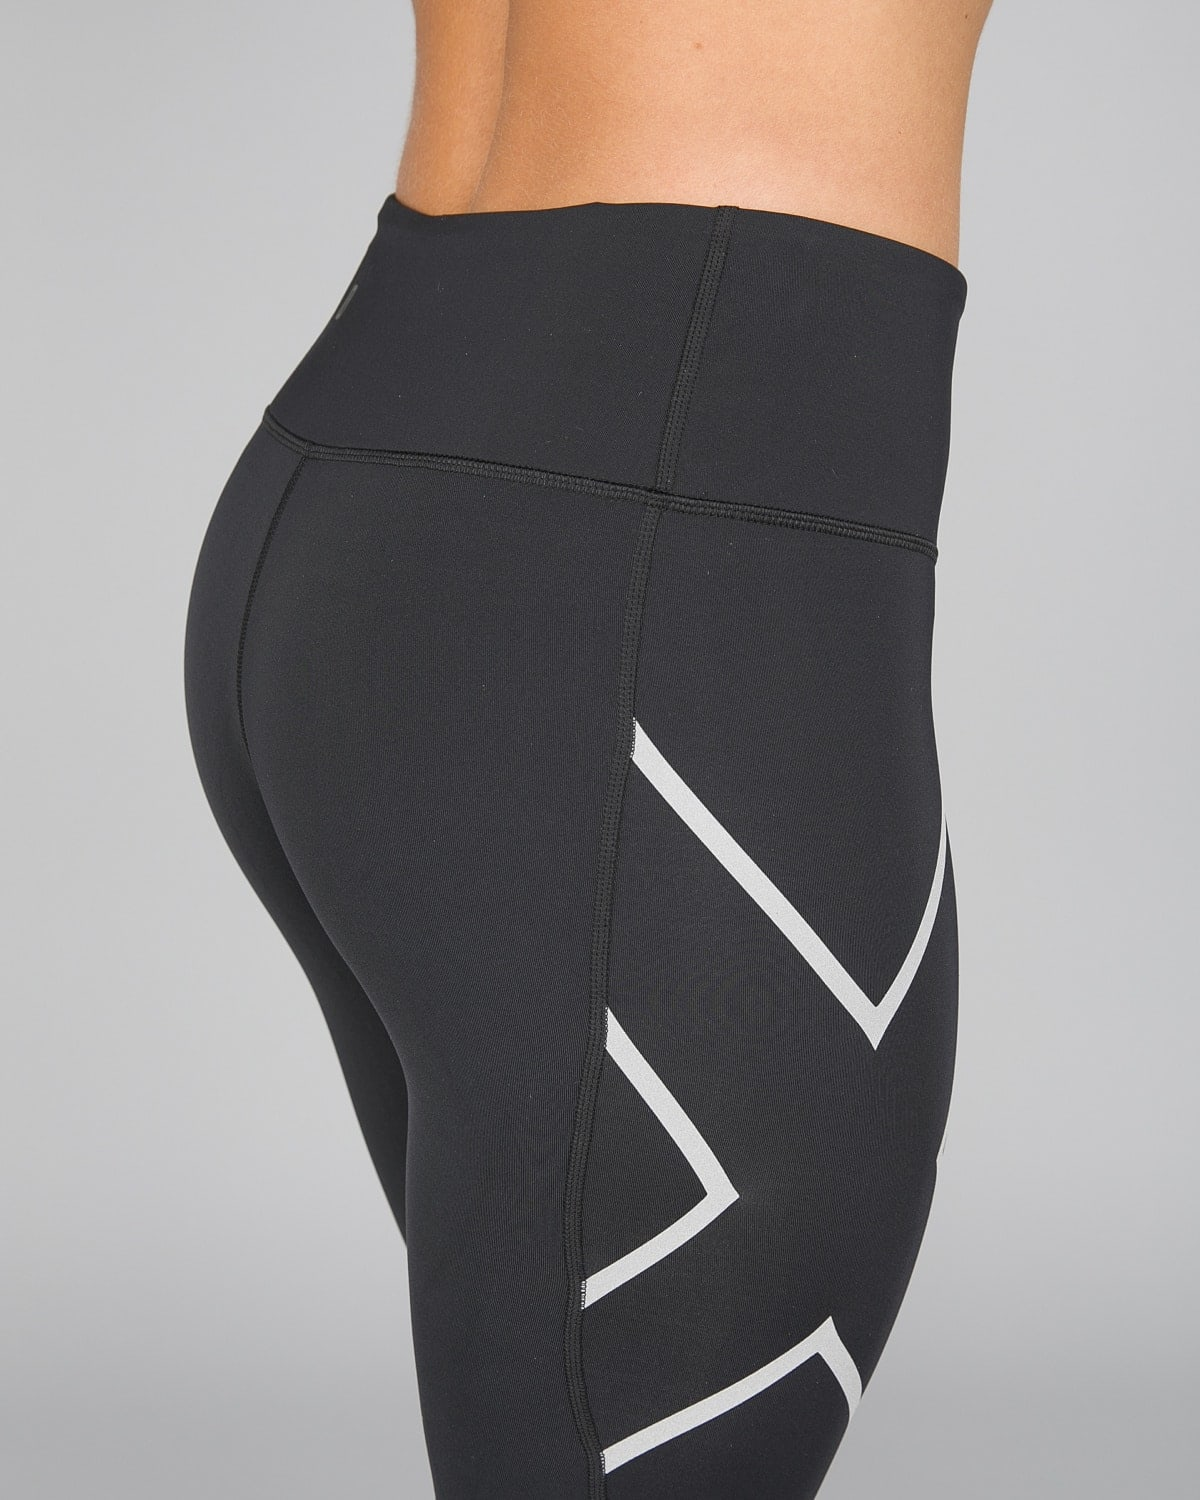 2XU Run Mid-Rise Dash Comp Tights Women – Black:Silver Reflective2